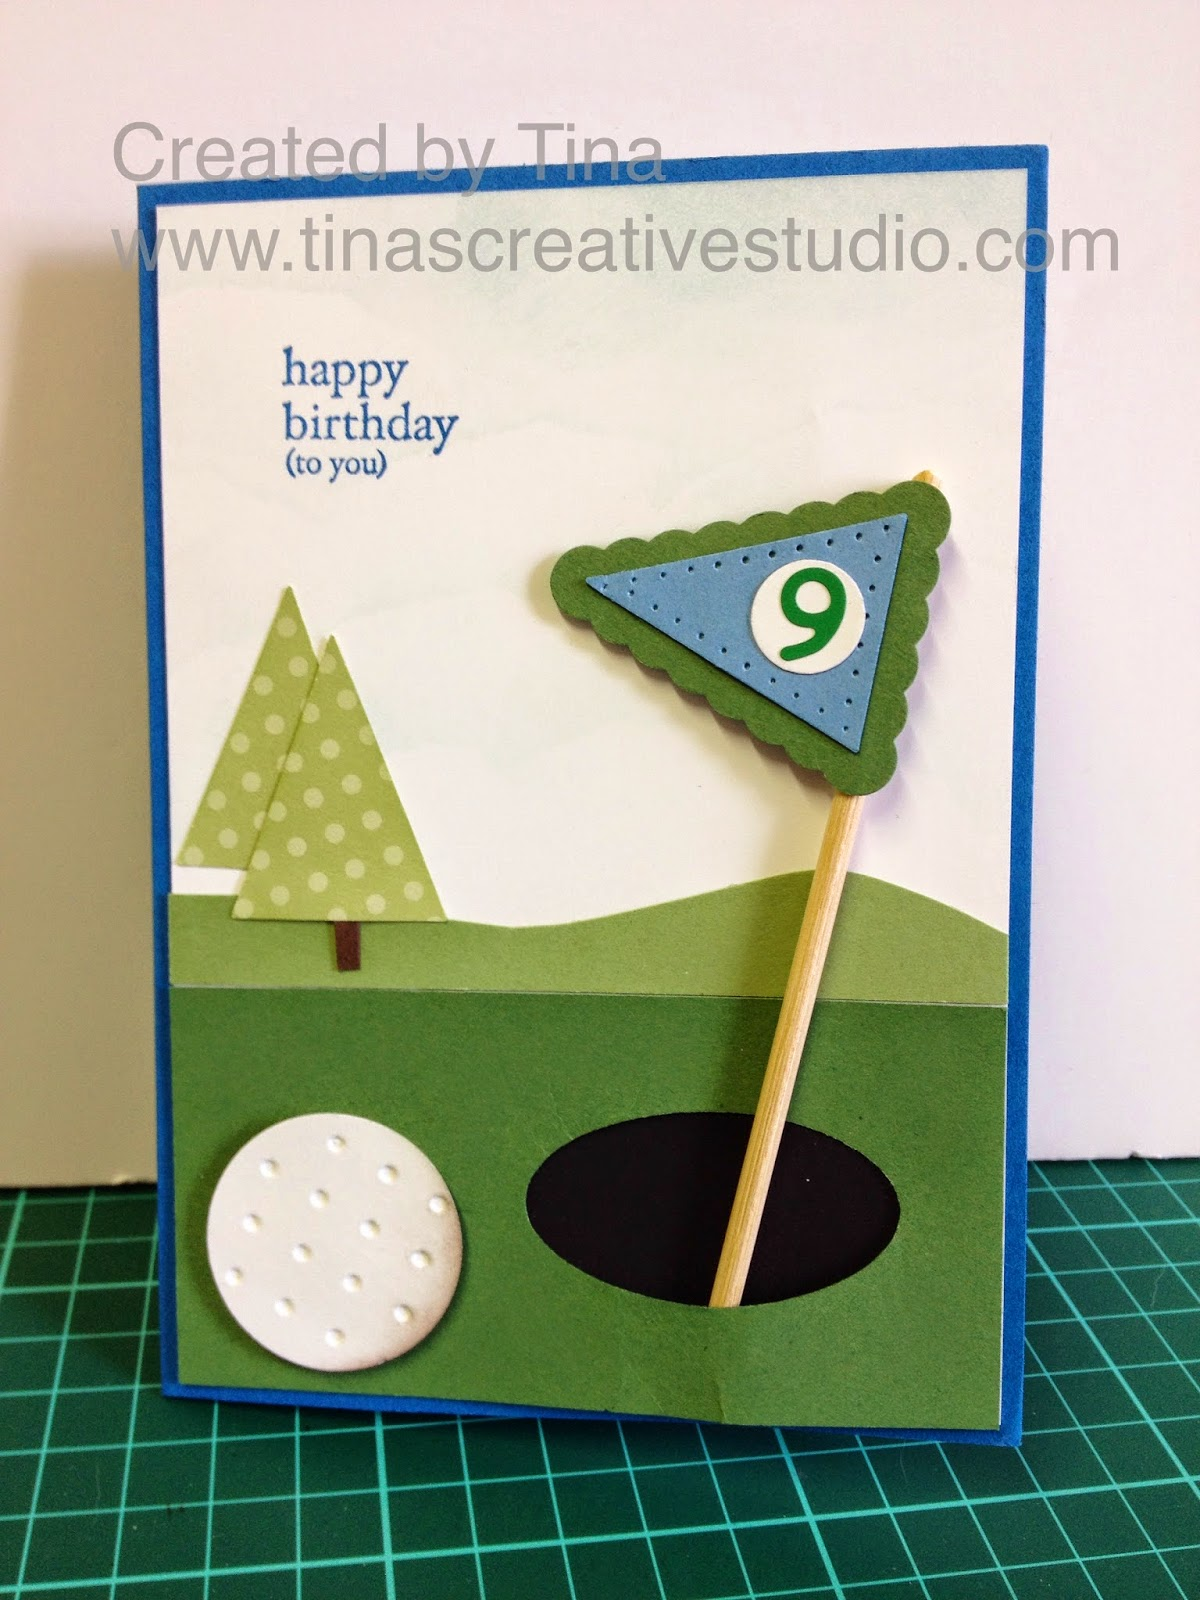 Tinas Creative Studio Golf themed birthday card – Birthday Cards Golf